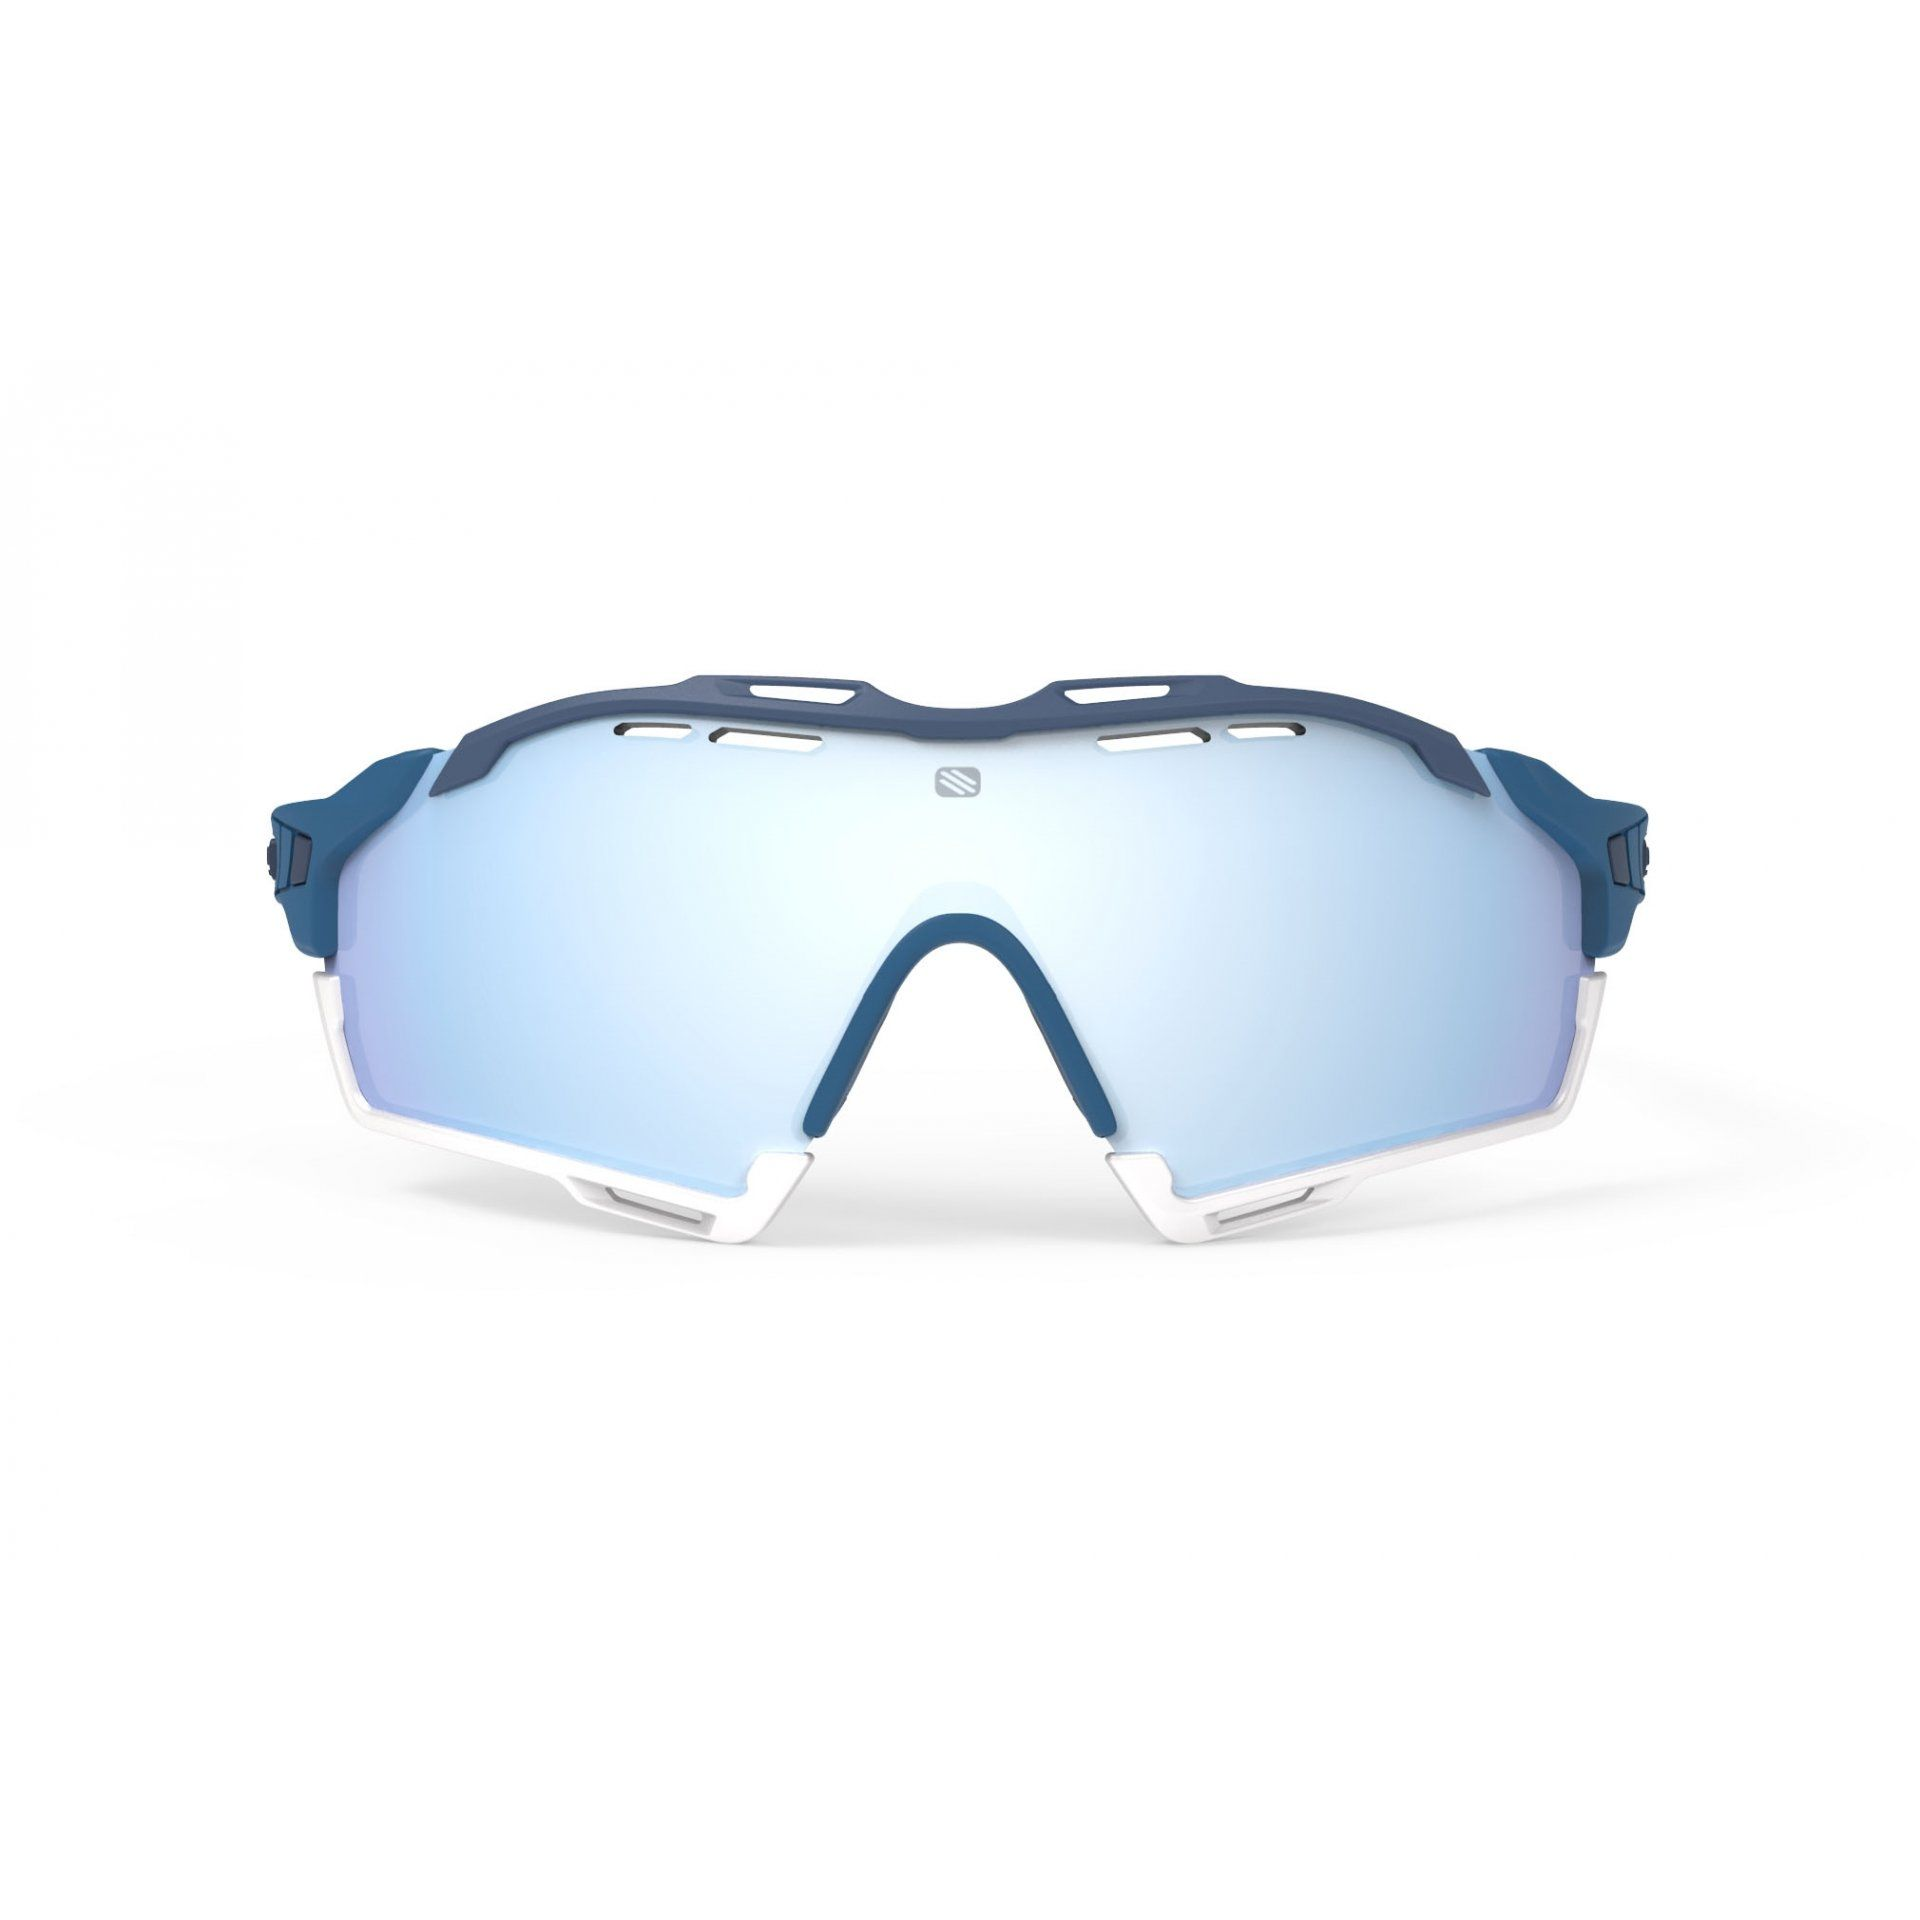 OKULARY RUDY PROJECT CUTLINE PACIFIC BLUE MATTE+MULTILASER ICE 2